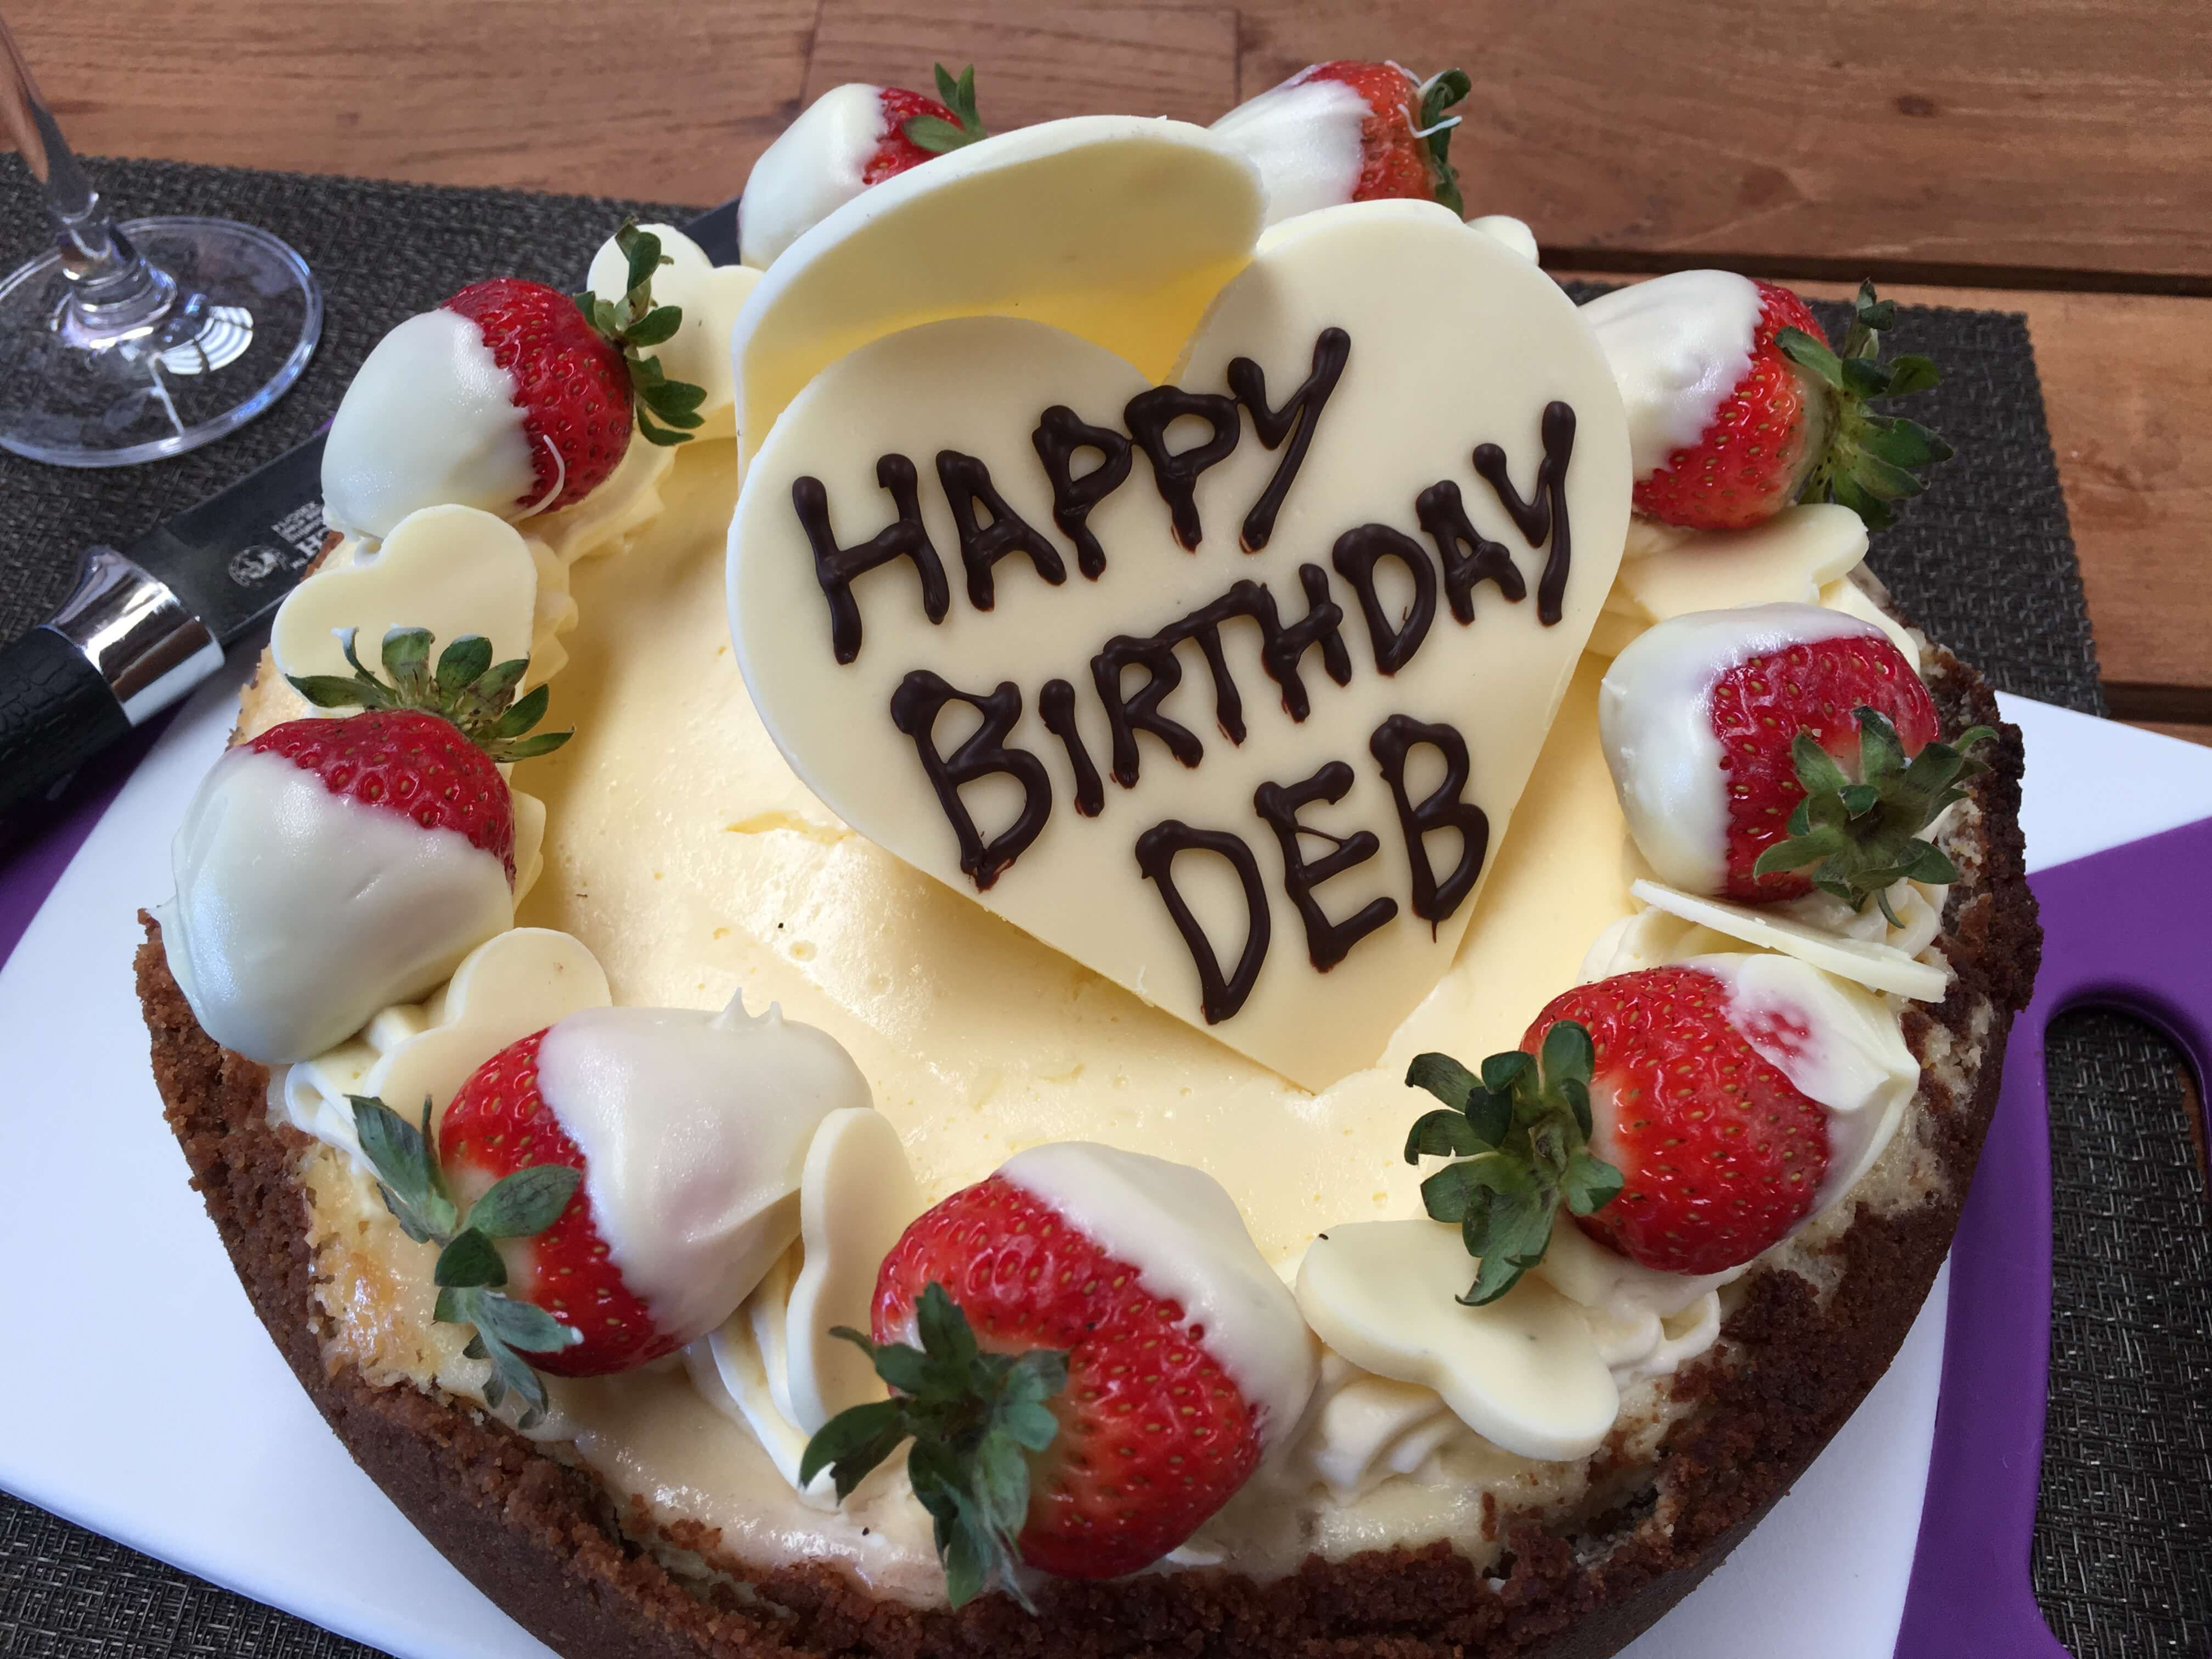 Happy Birthday Debbie Cake Special Occasion Cakes Ningaloo Bake House